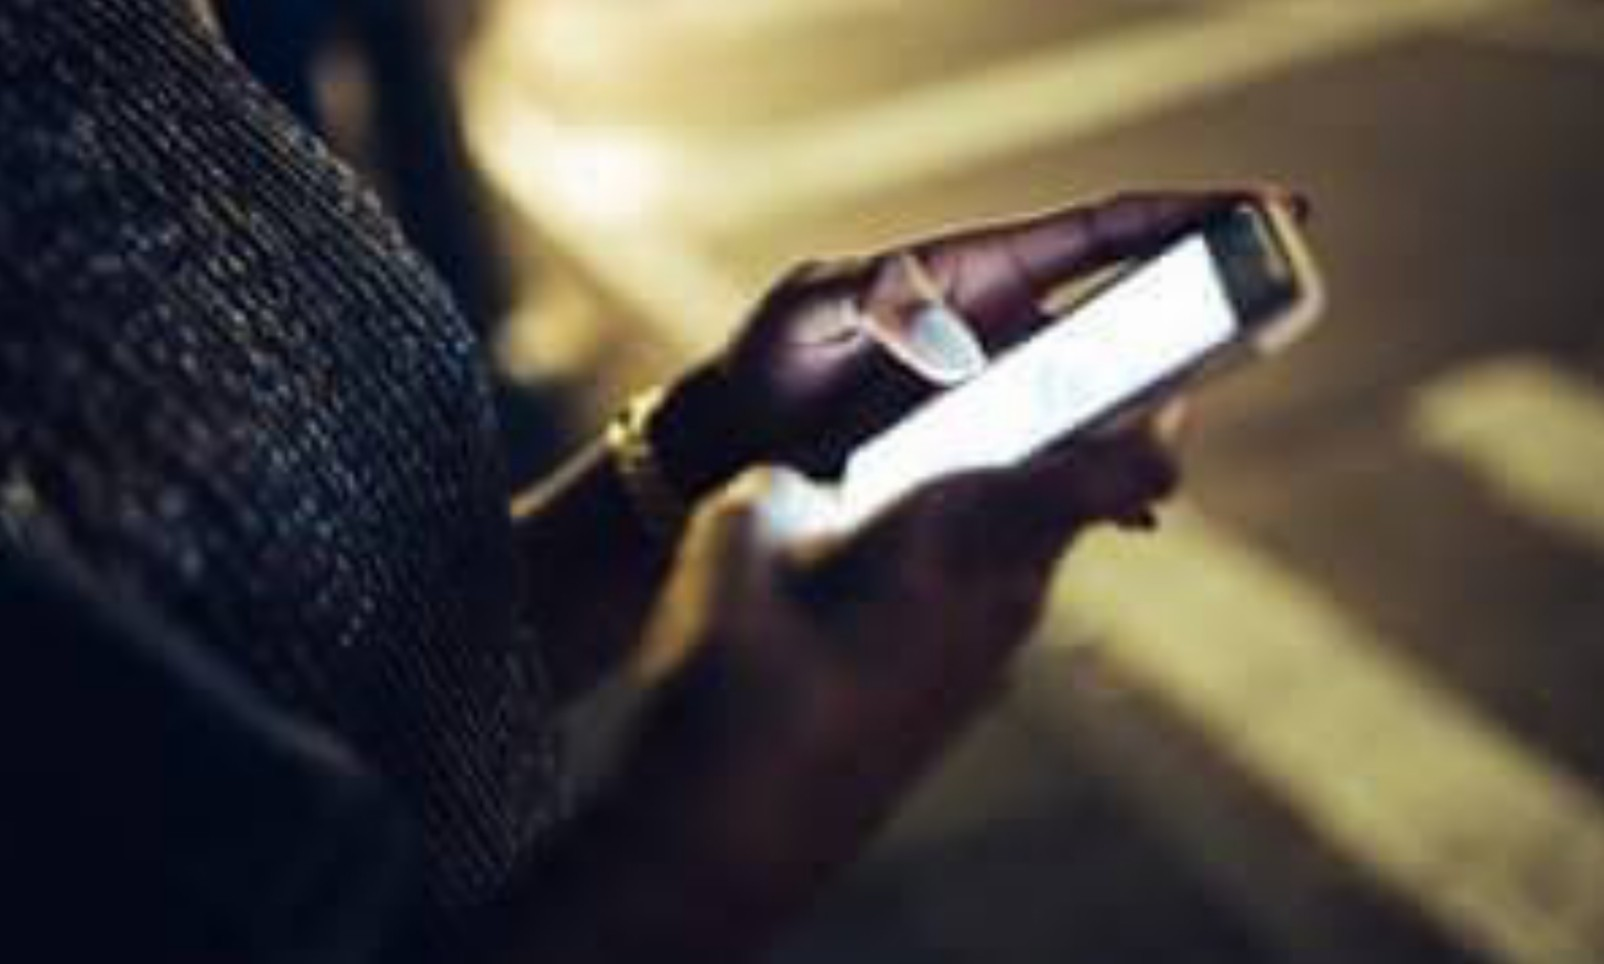 Nigerians pay N2tr for calls, data in six months